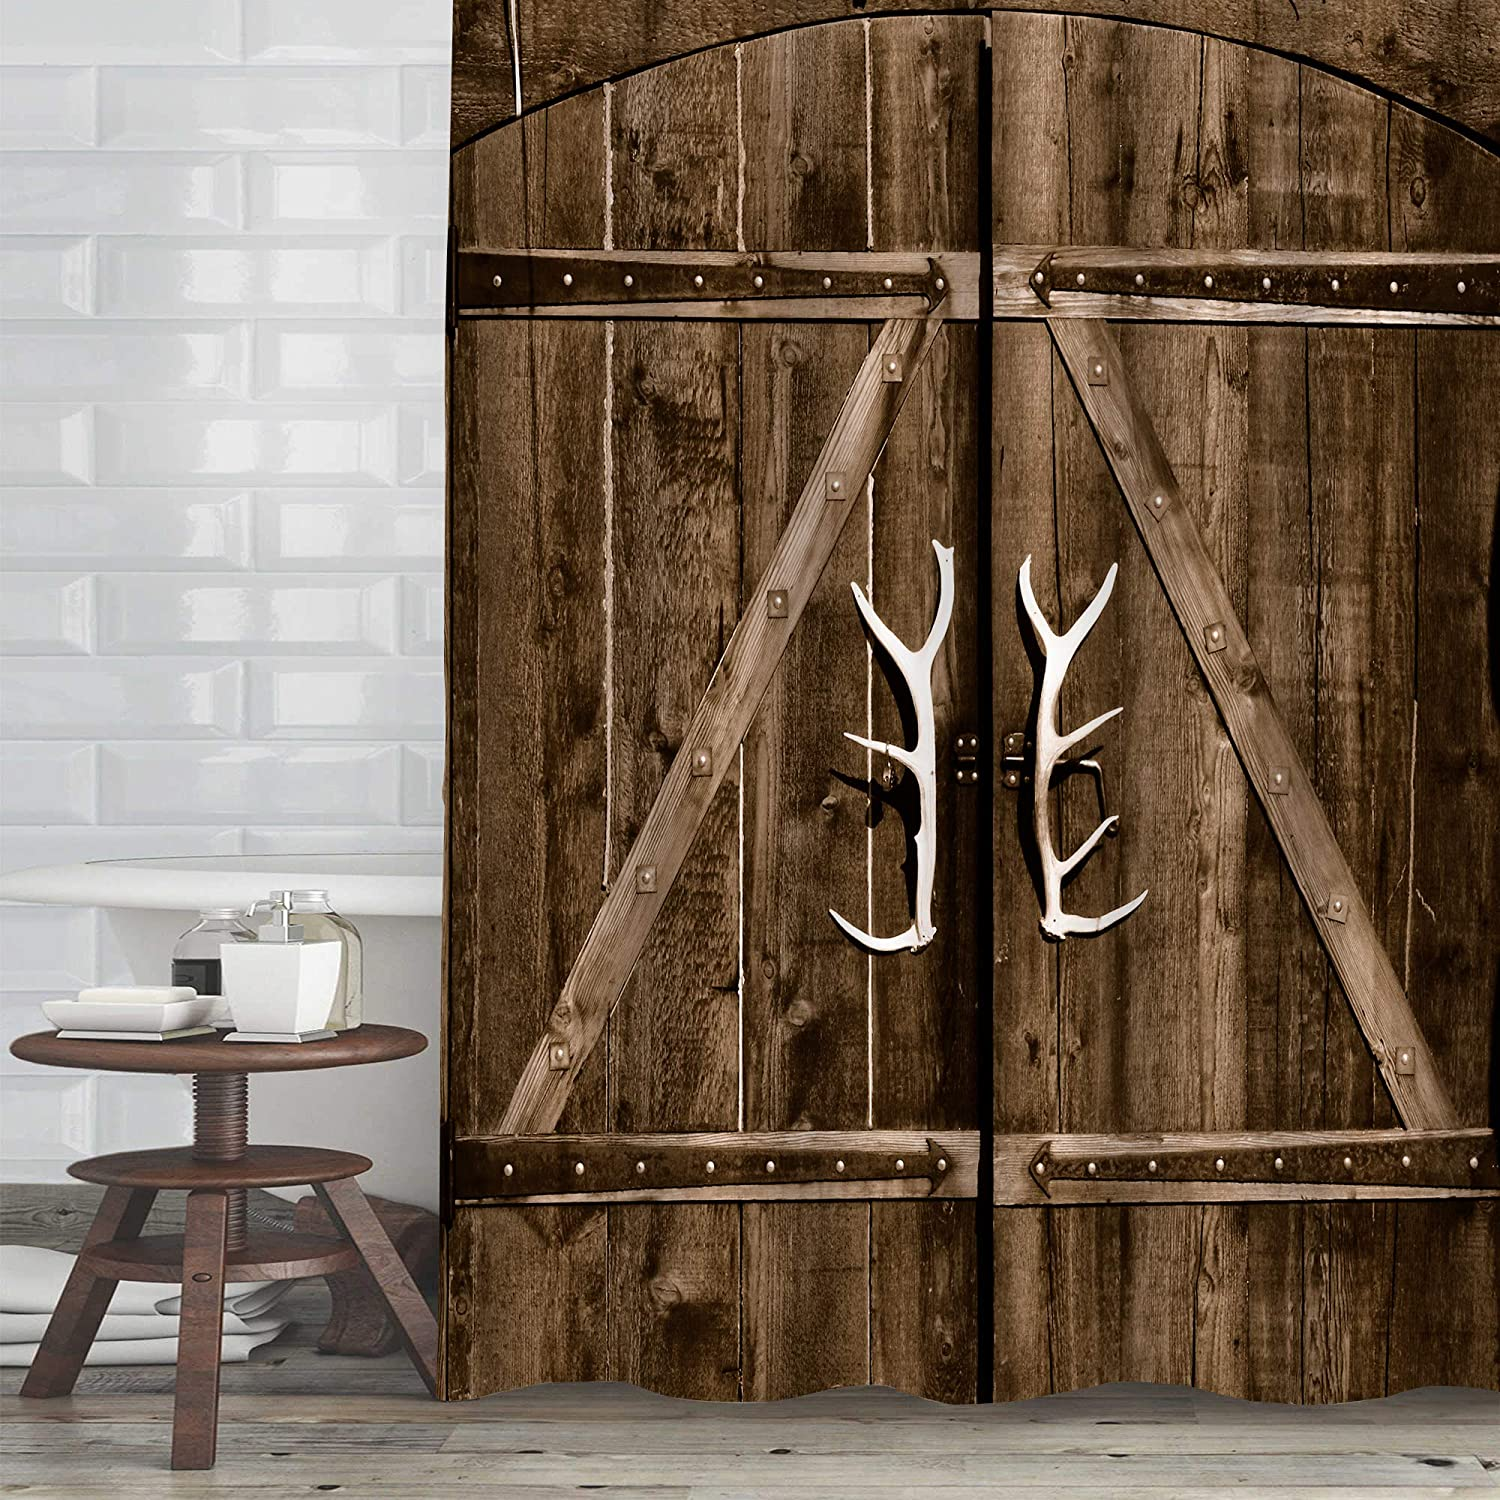 MitoVilla Wooden Barn Door Max 43% OFF Shower Hooks Sales results No. 1 with Rustic Set Curtain